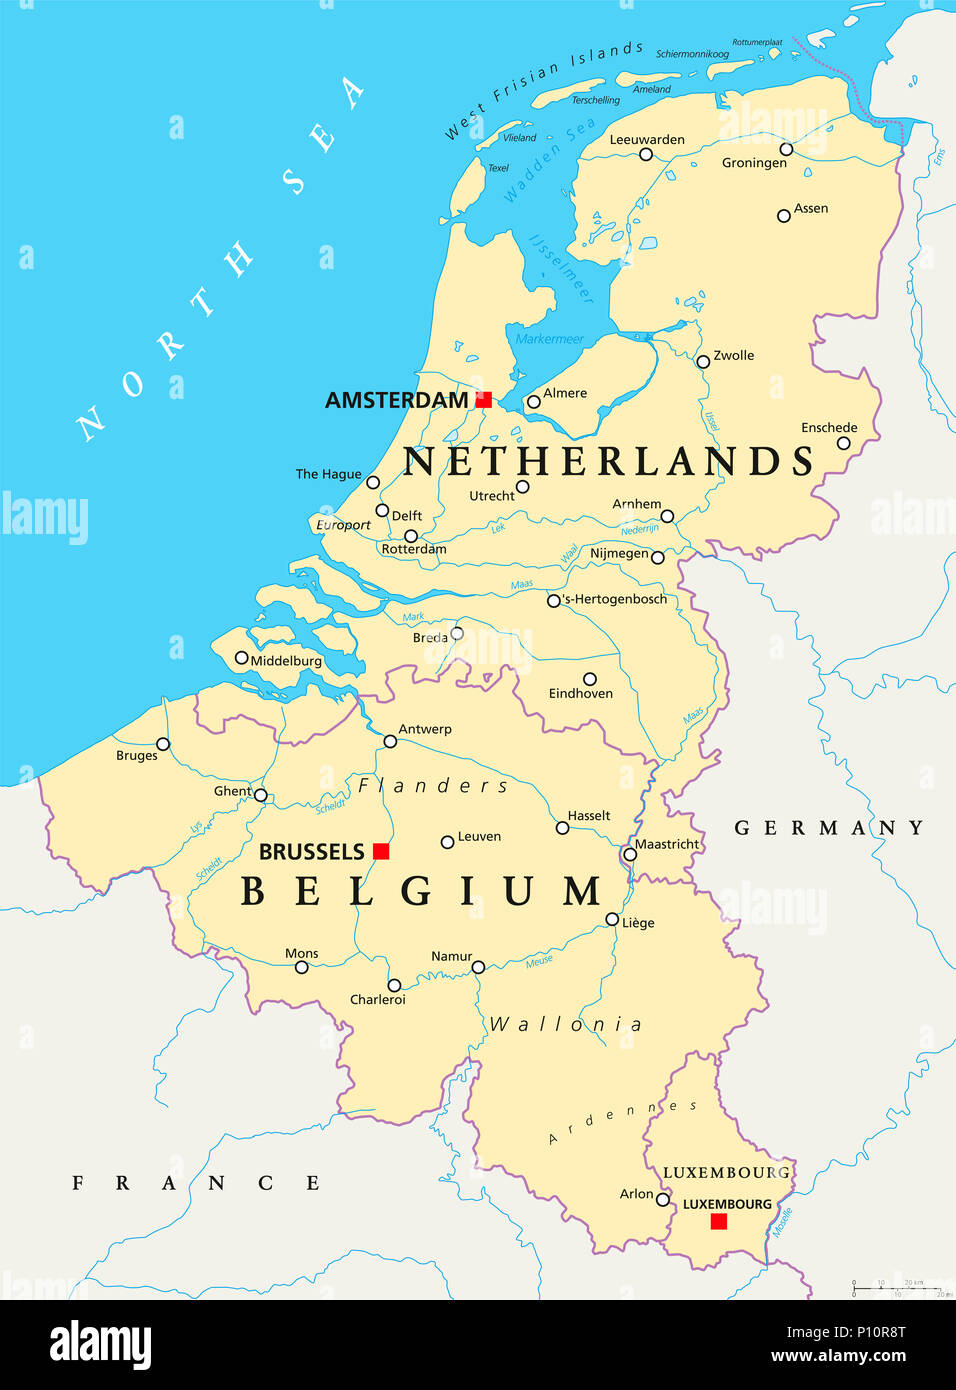 map of belgium and luxembourg Benelux Belgium Netherlands And Luxembourg Political Map With map of belgium and luxembourg